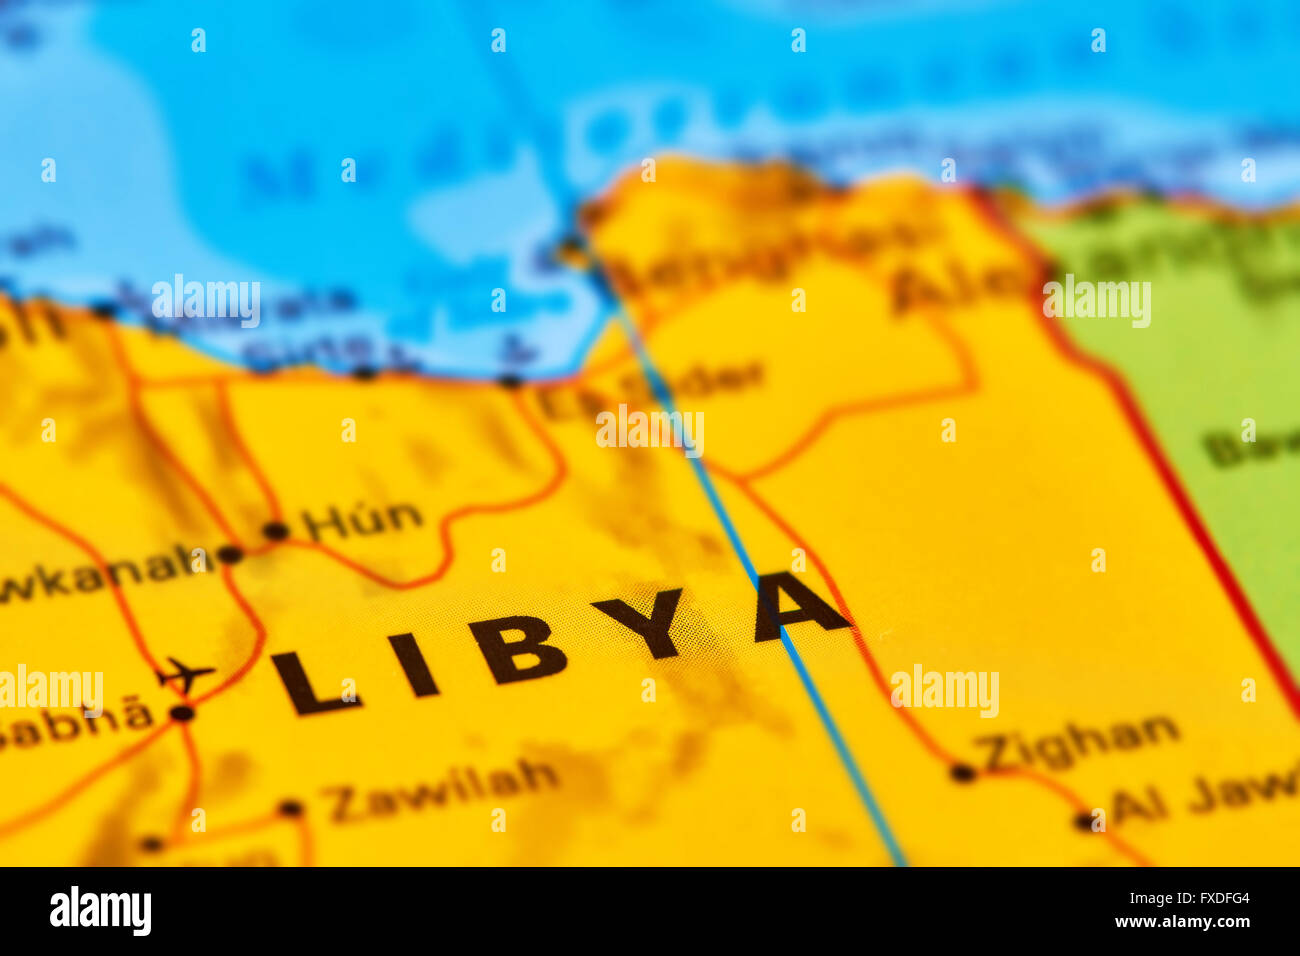 Libya country in africa on the world map stock photo 102330484 alamy libya country in africa on the world map gumiabroncs Images